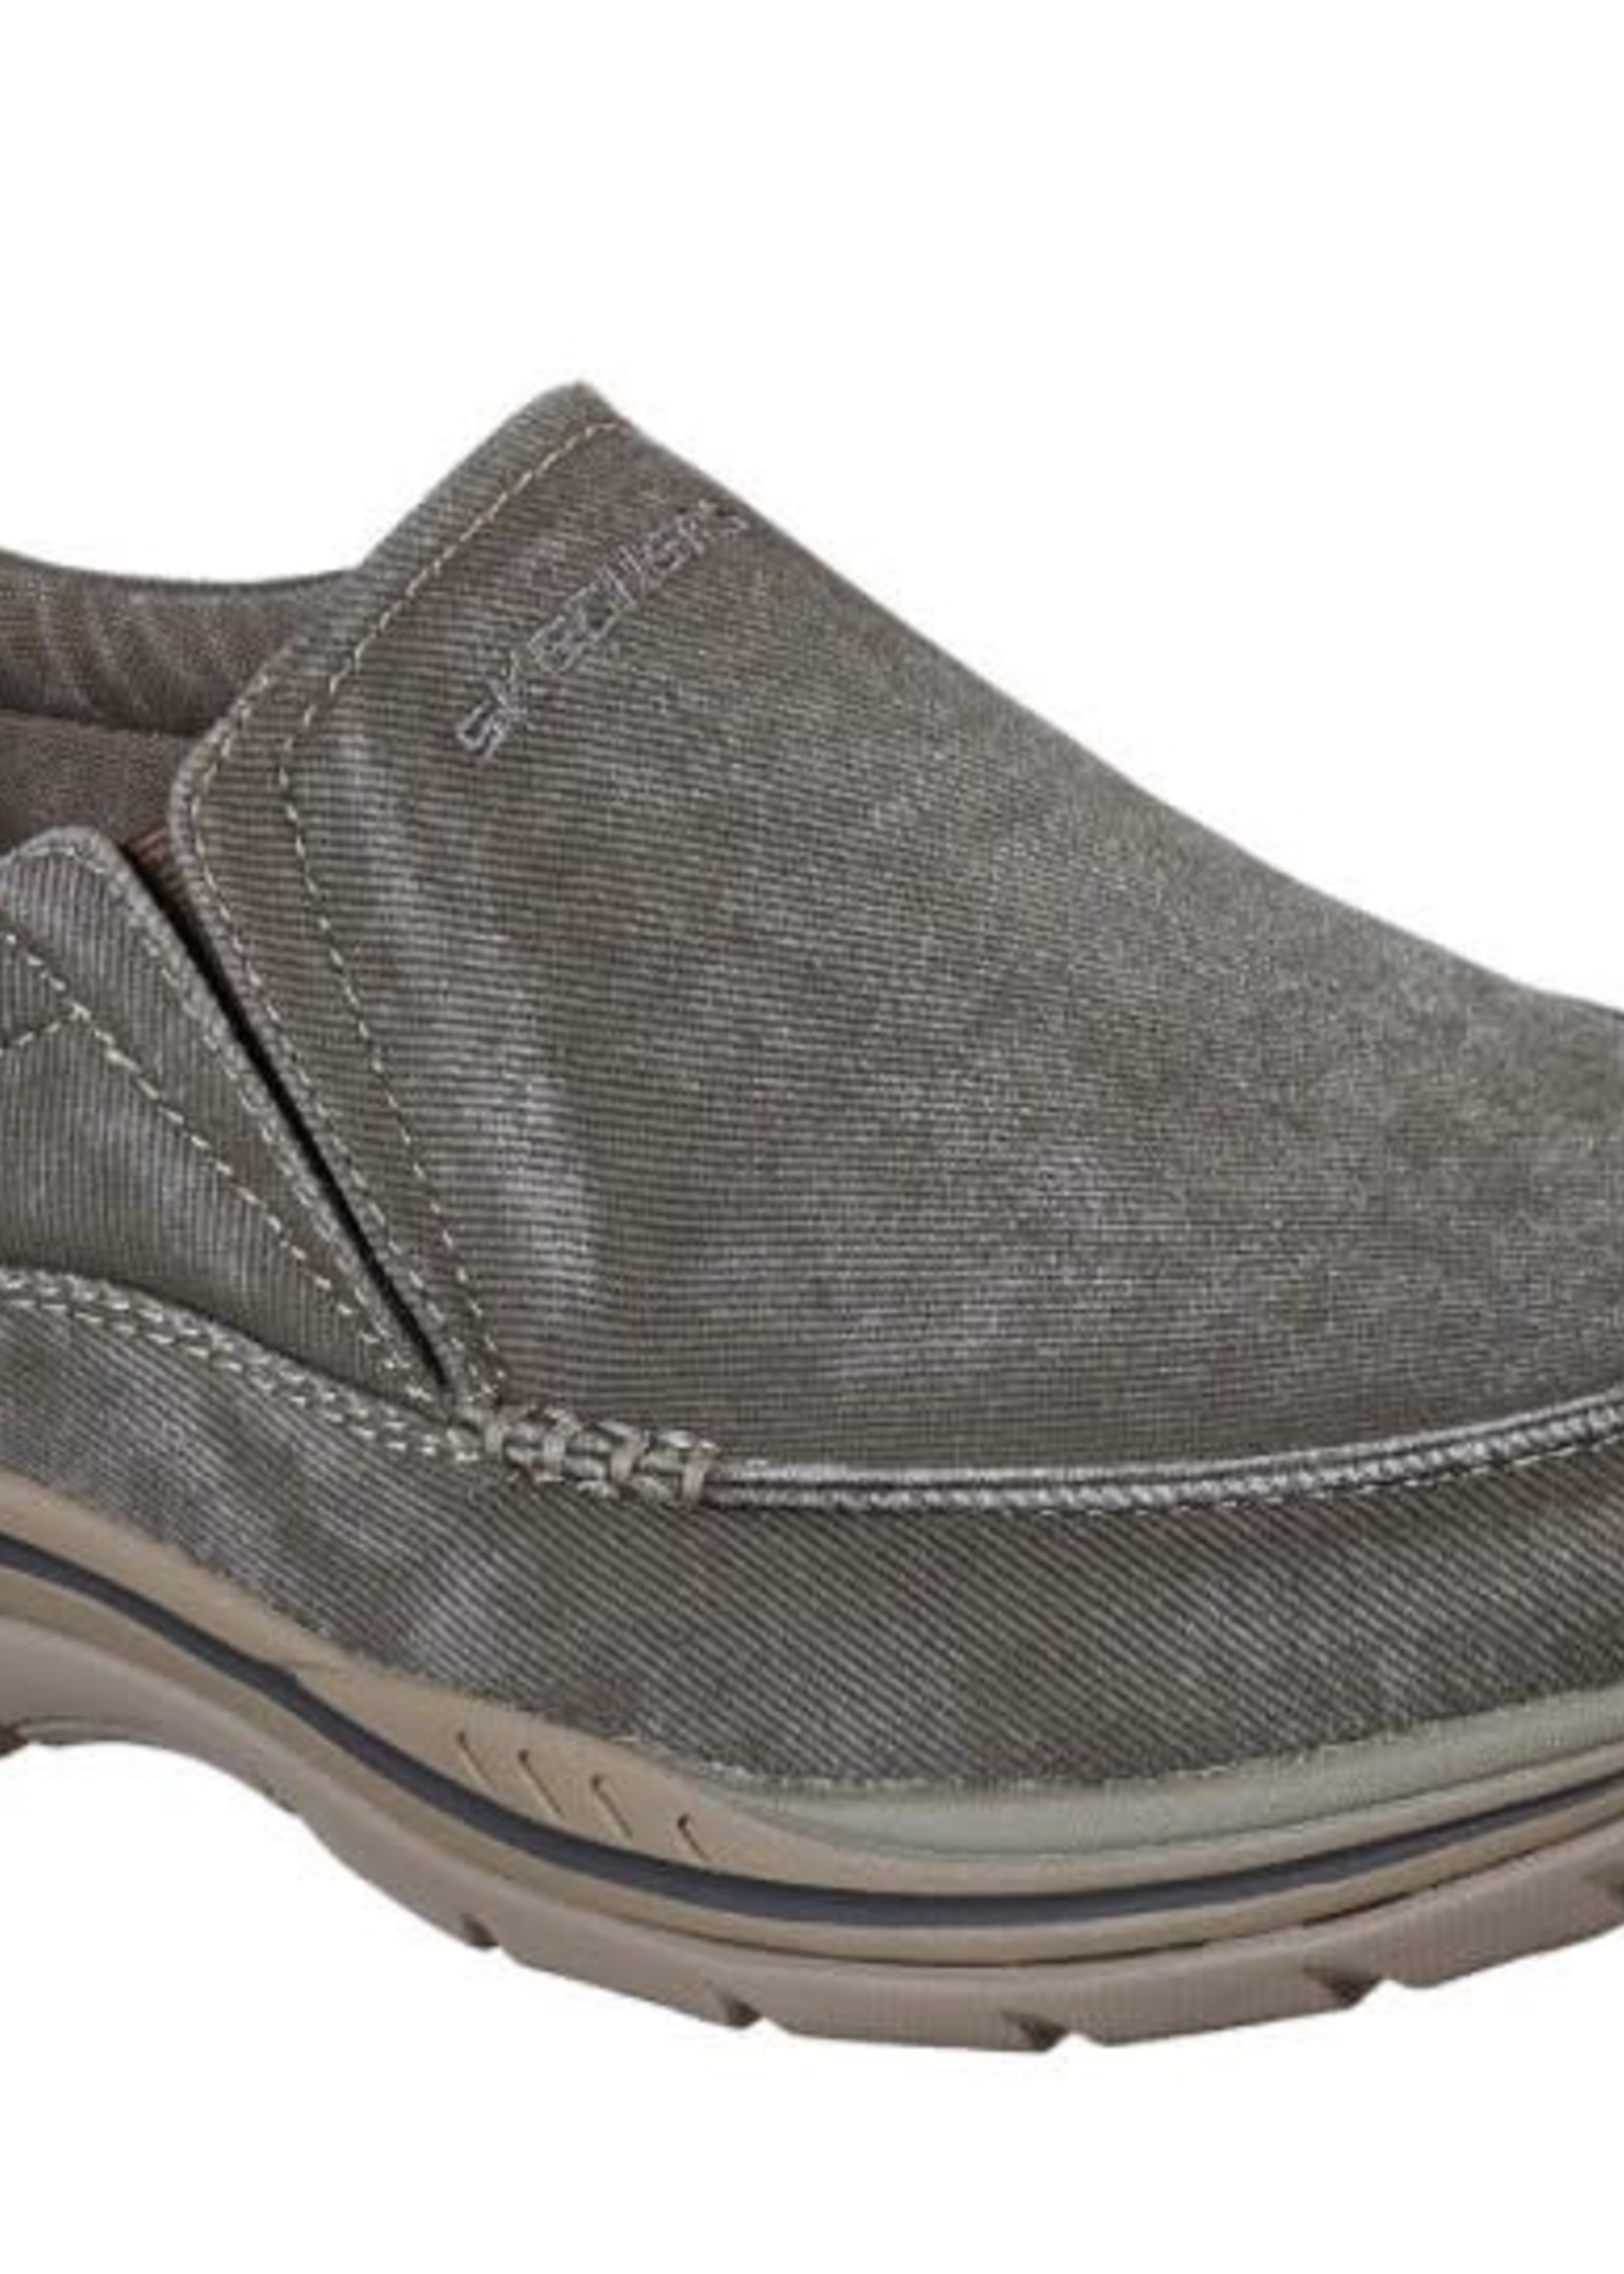 Skechers RELAXED FIT: EXPECTED-AVILLO 64109